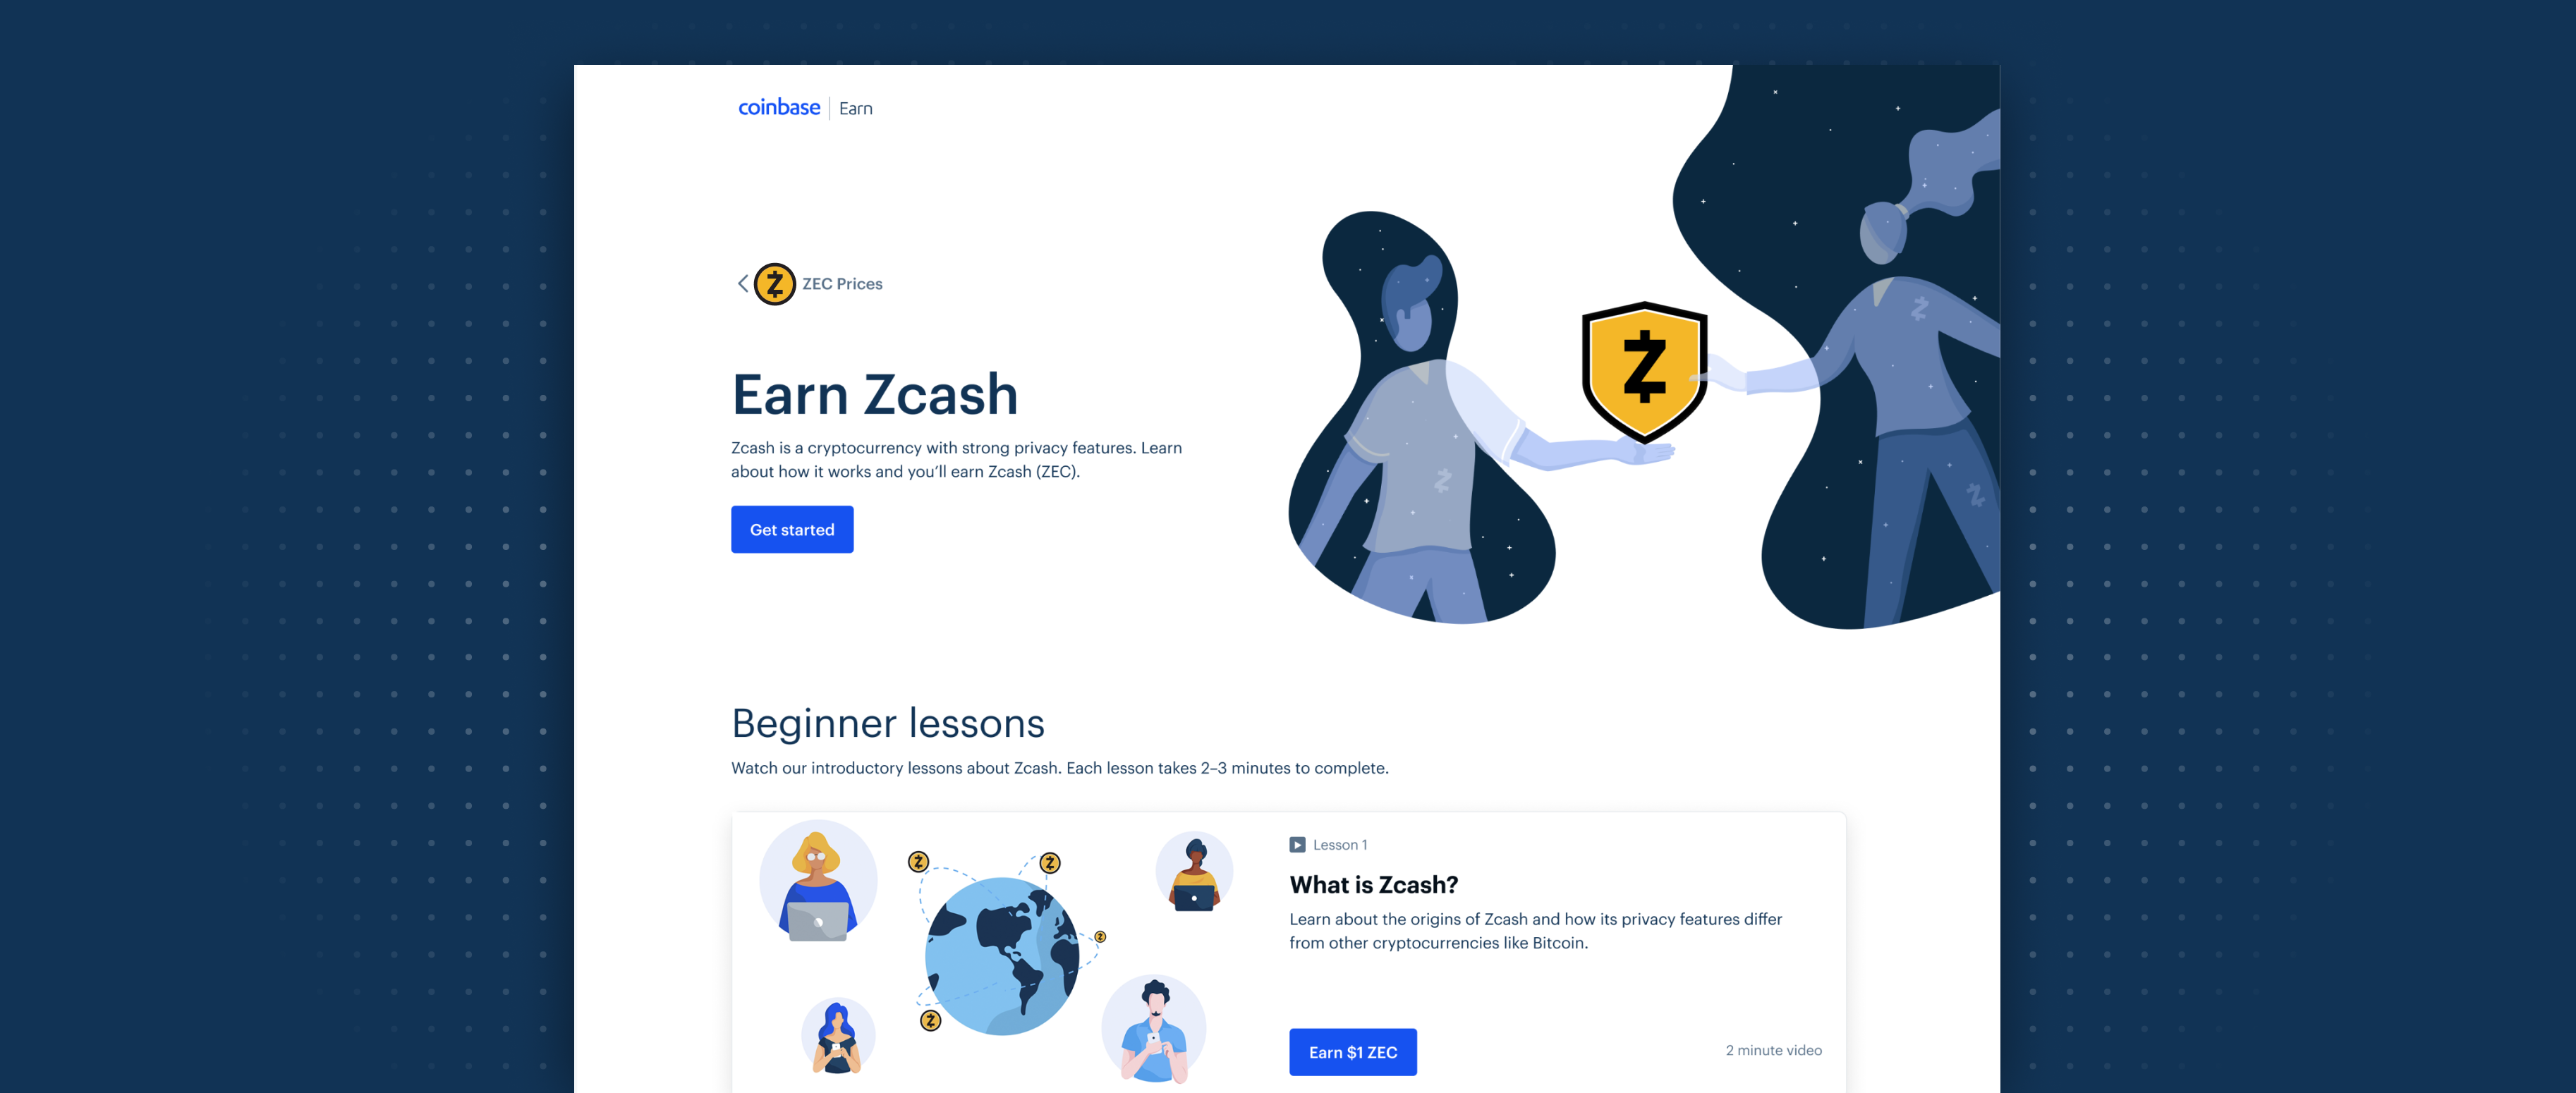 Earn Zcash While Learning About Blockchain Privacy The Coinbase Blog -